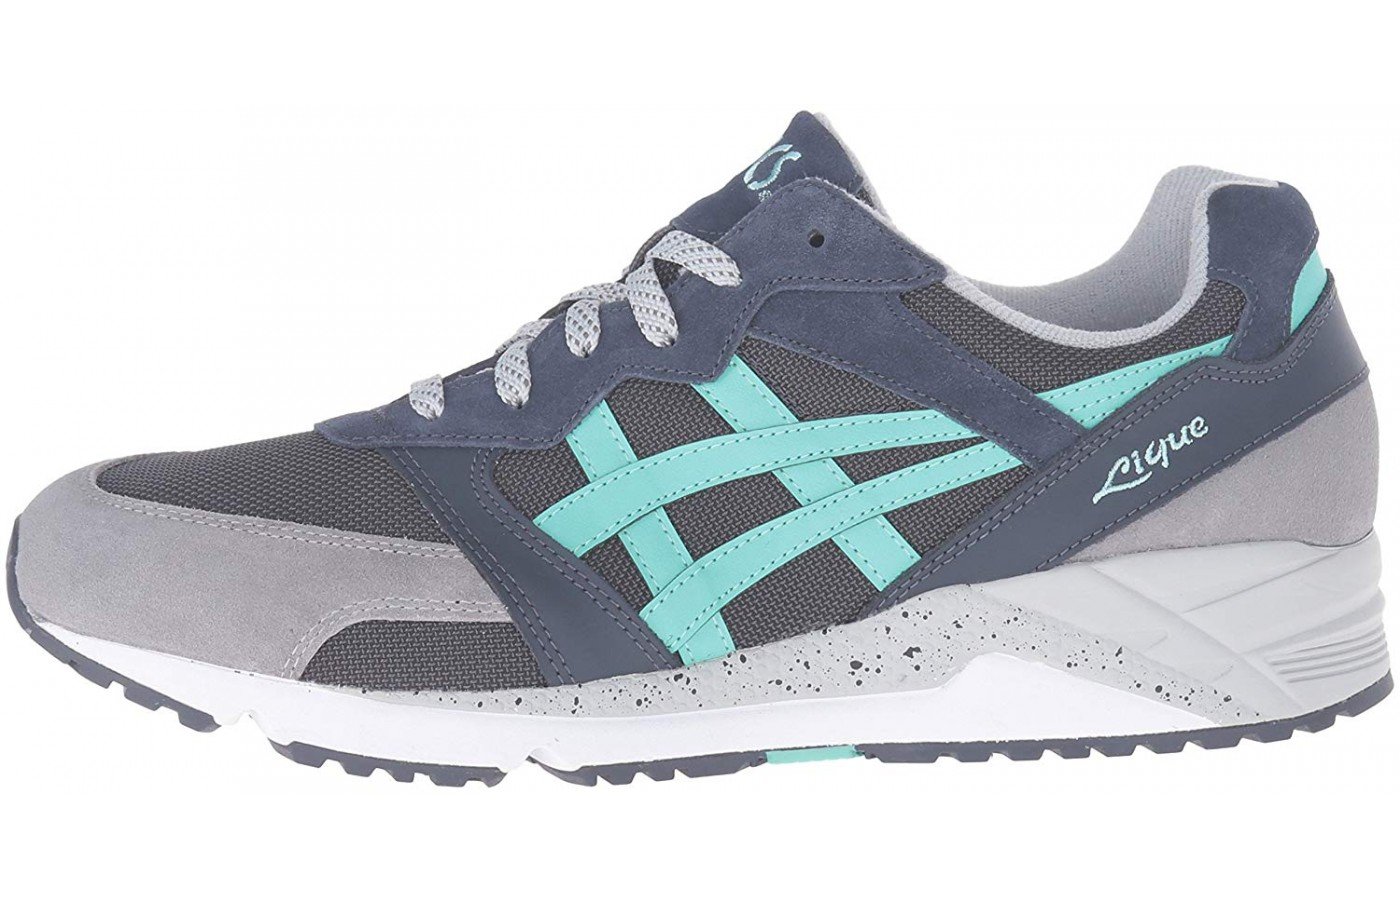 ASICS Gel-Lique left